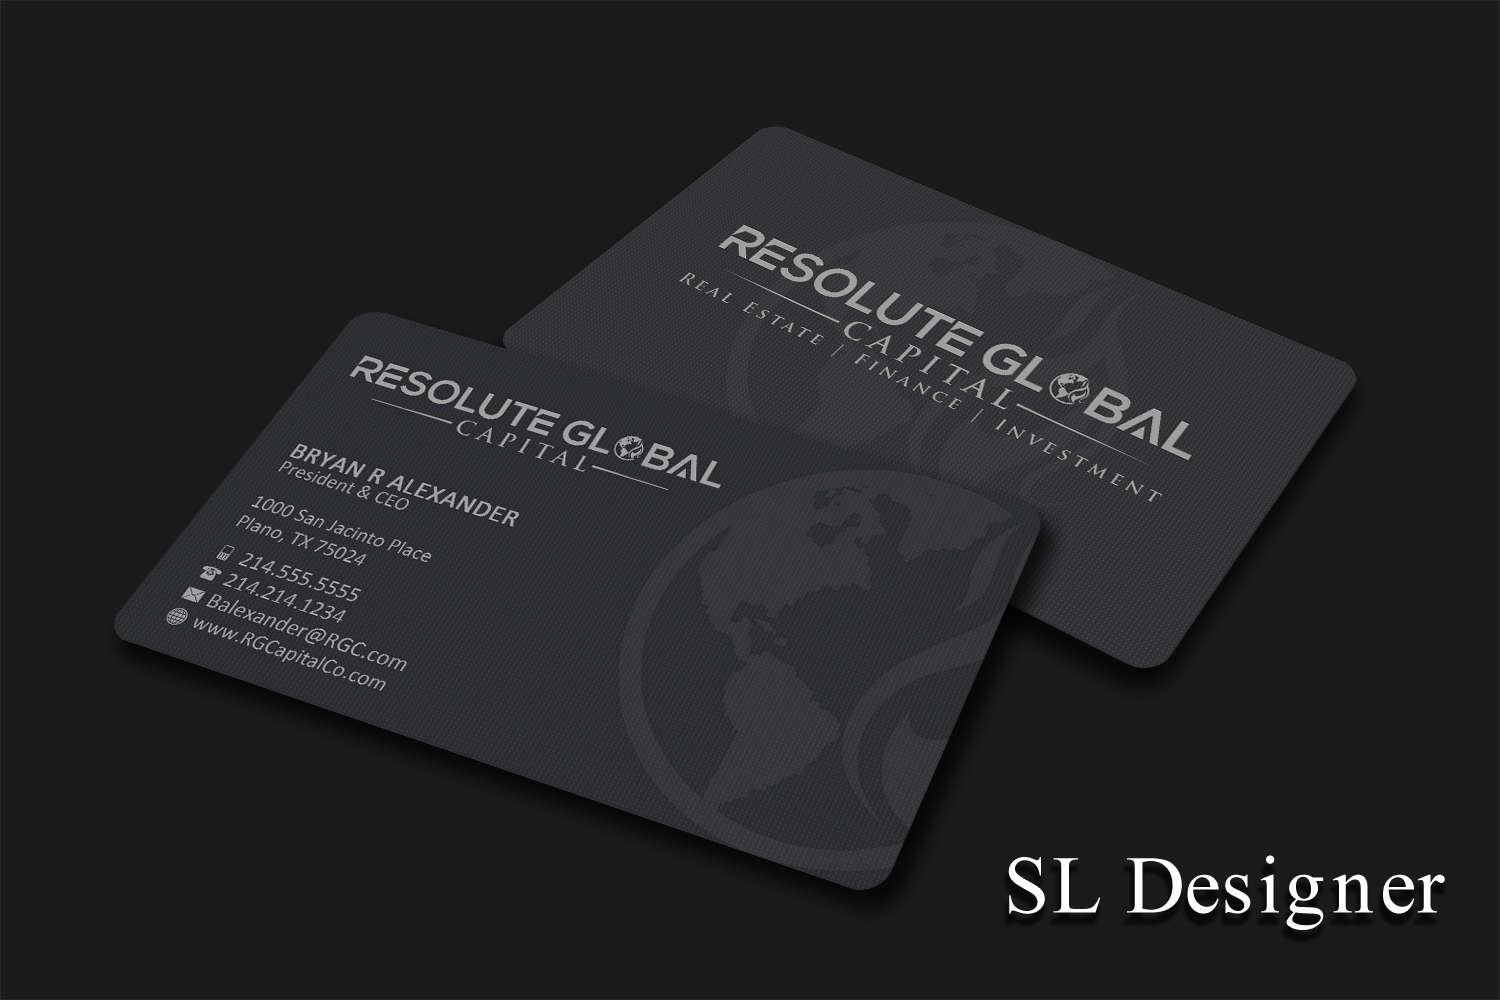 Serious, Professional Business Card Design for resolute global ...